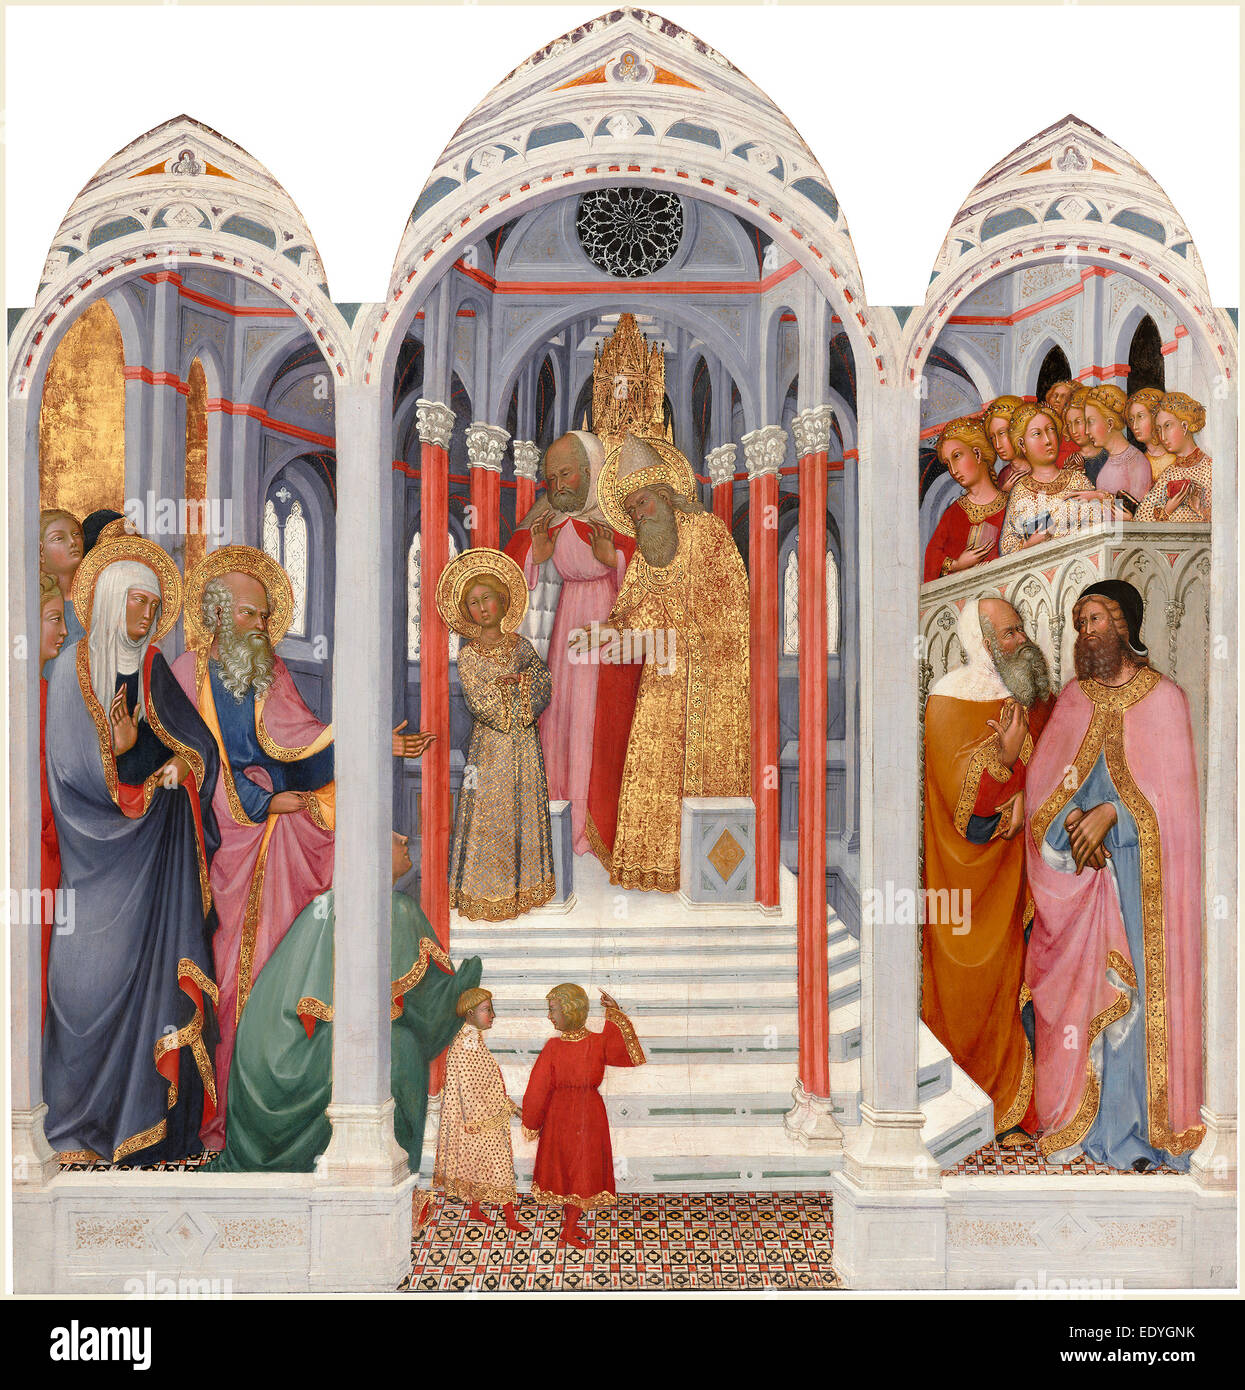 Paolo di Giovanni Fei, Italian (mentioned 1369-1411), The Presentation of the Virgin, c. 1400, tempera on wood - Stock Image